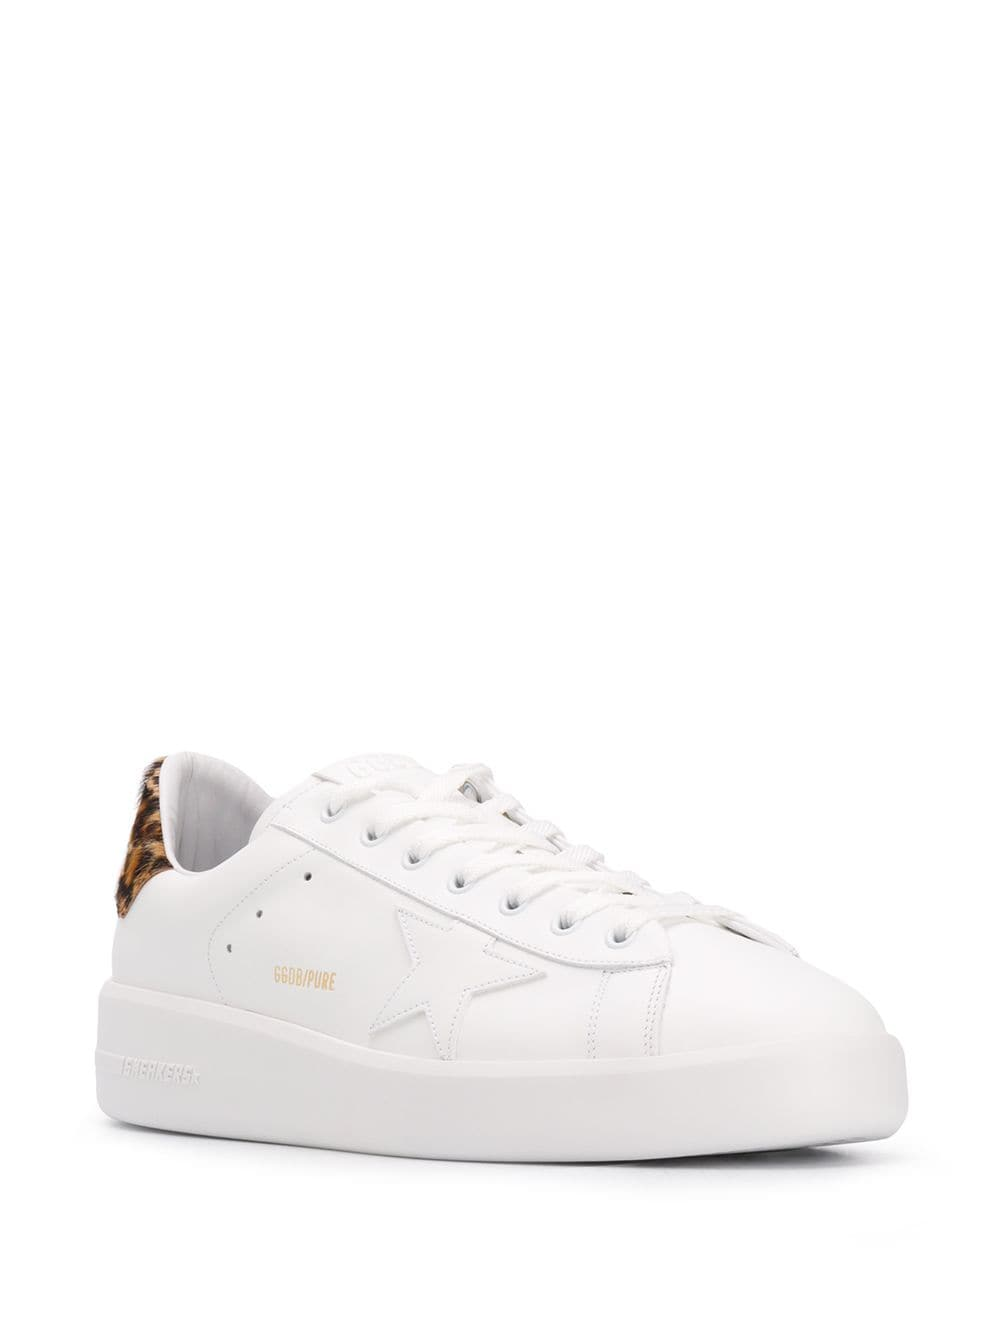 Men's Purestar Sneakers